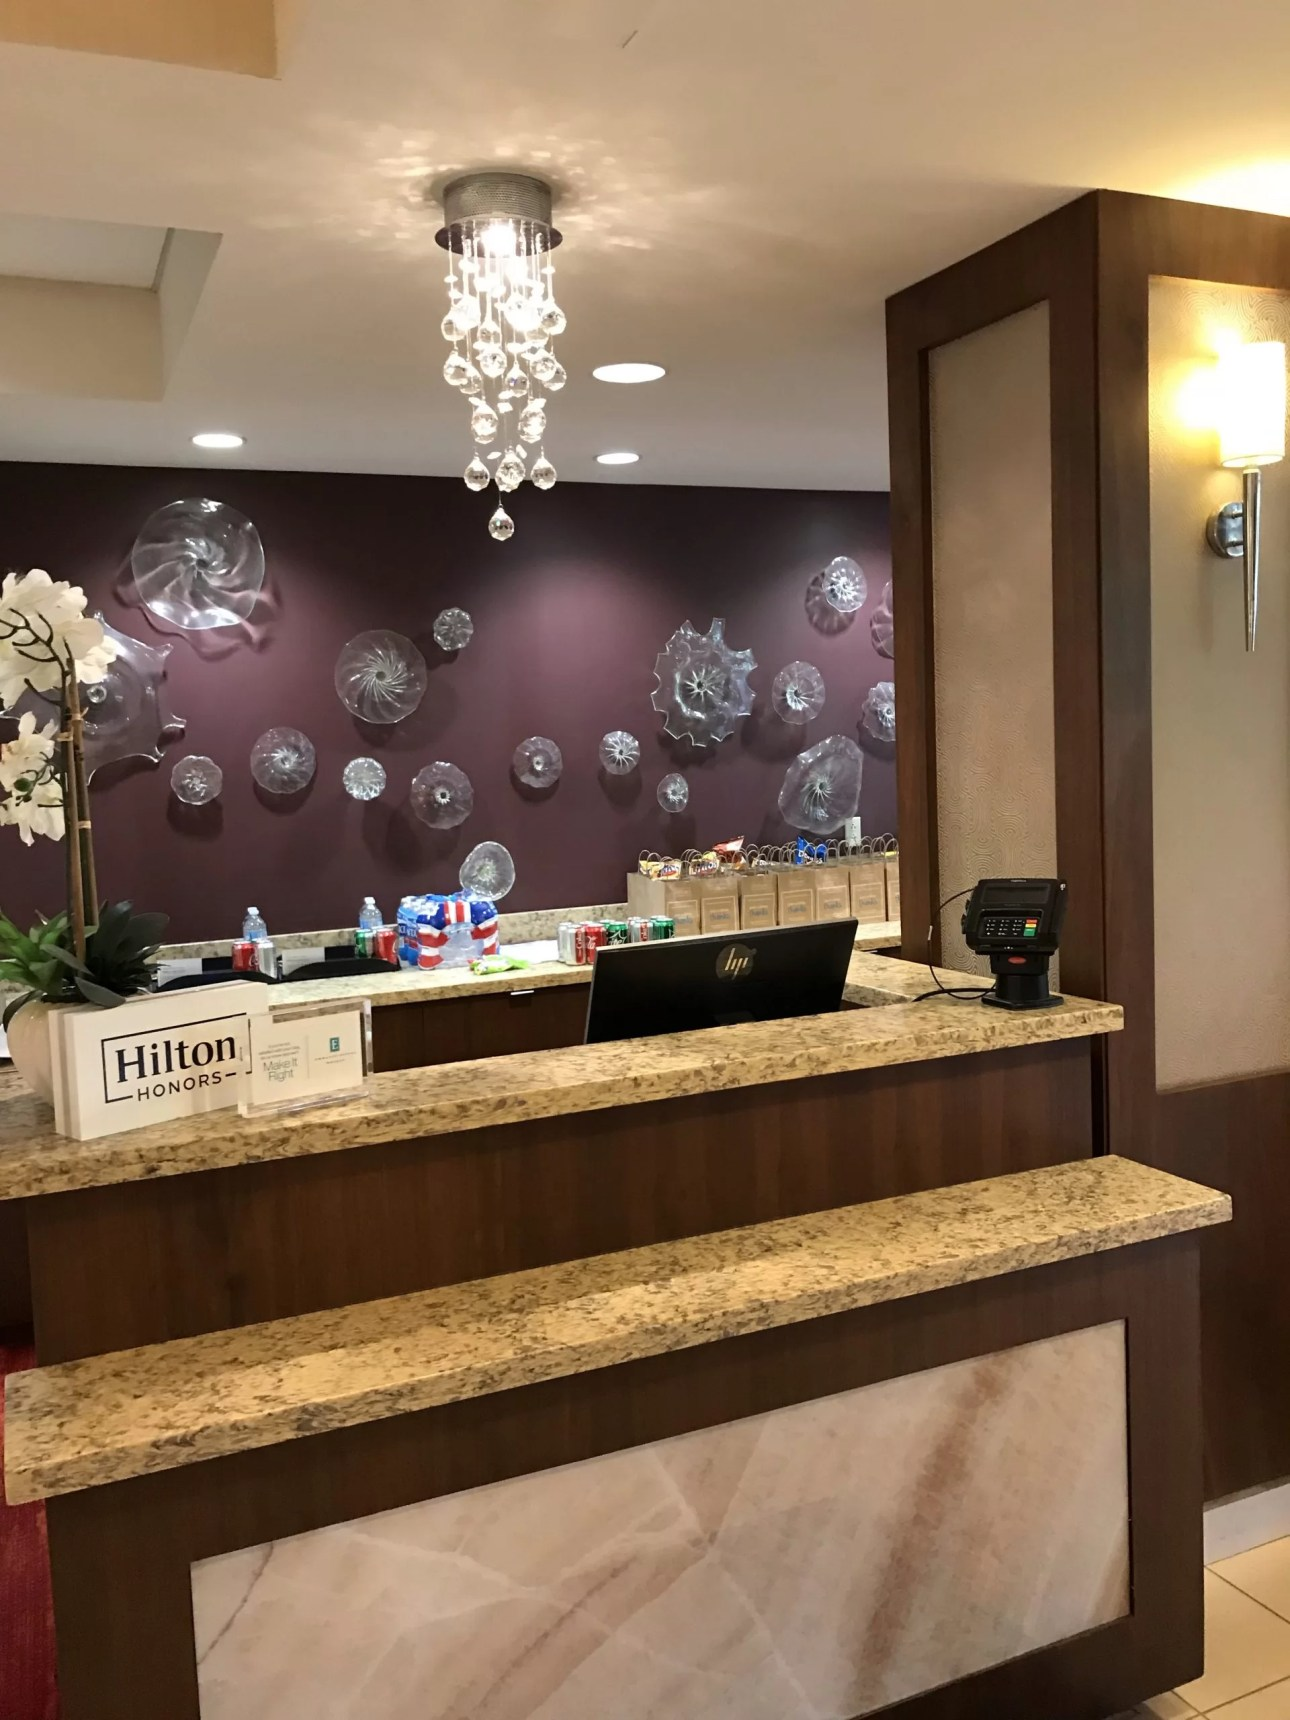 A hotel front desk in front of a purple wall with glass baubles on it and a light fixture with small glass globes hanging from it.  A Hilton placard and white flower on the desk.